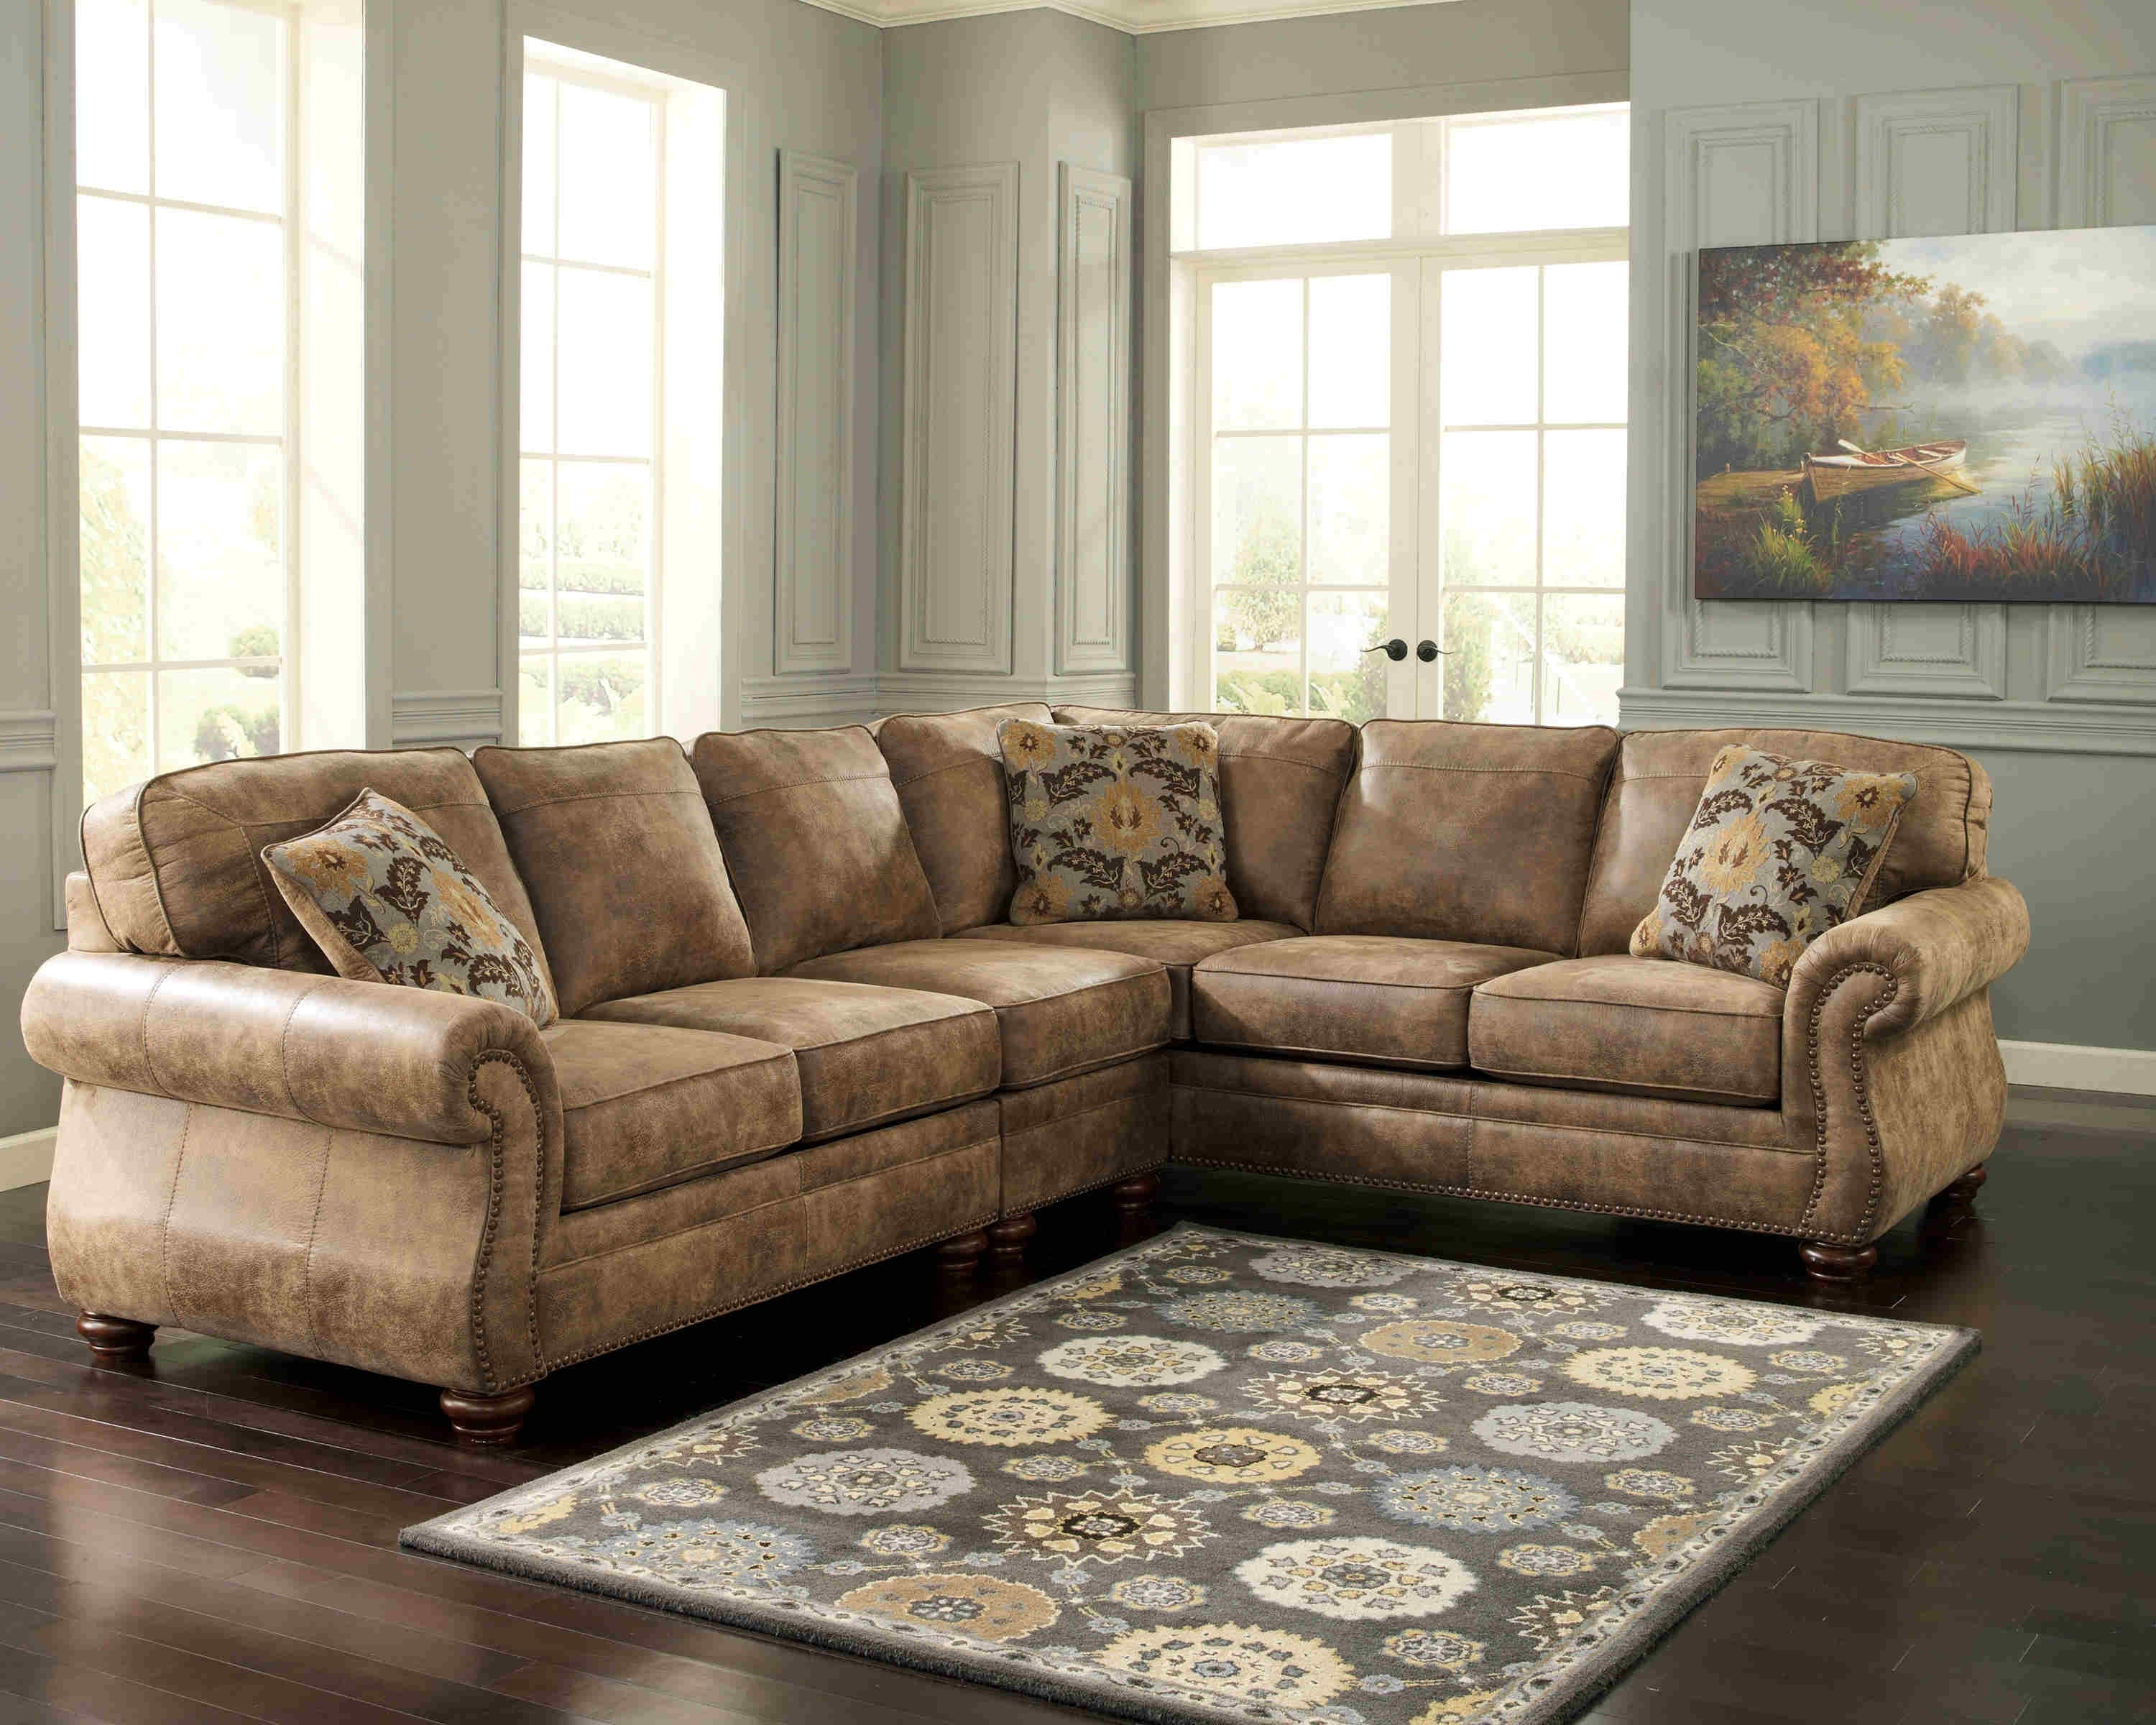 Popular Clarksville Tn Sectional Sofas Pertaining To Furniture: American Freight Columbus Ohio (View 9 of 15)